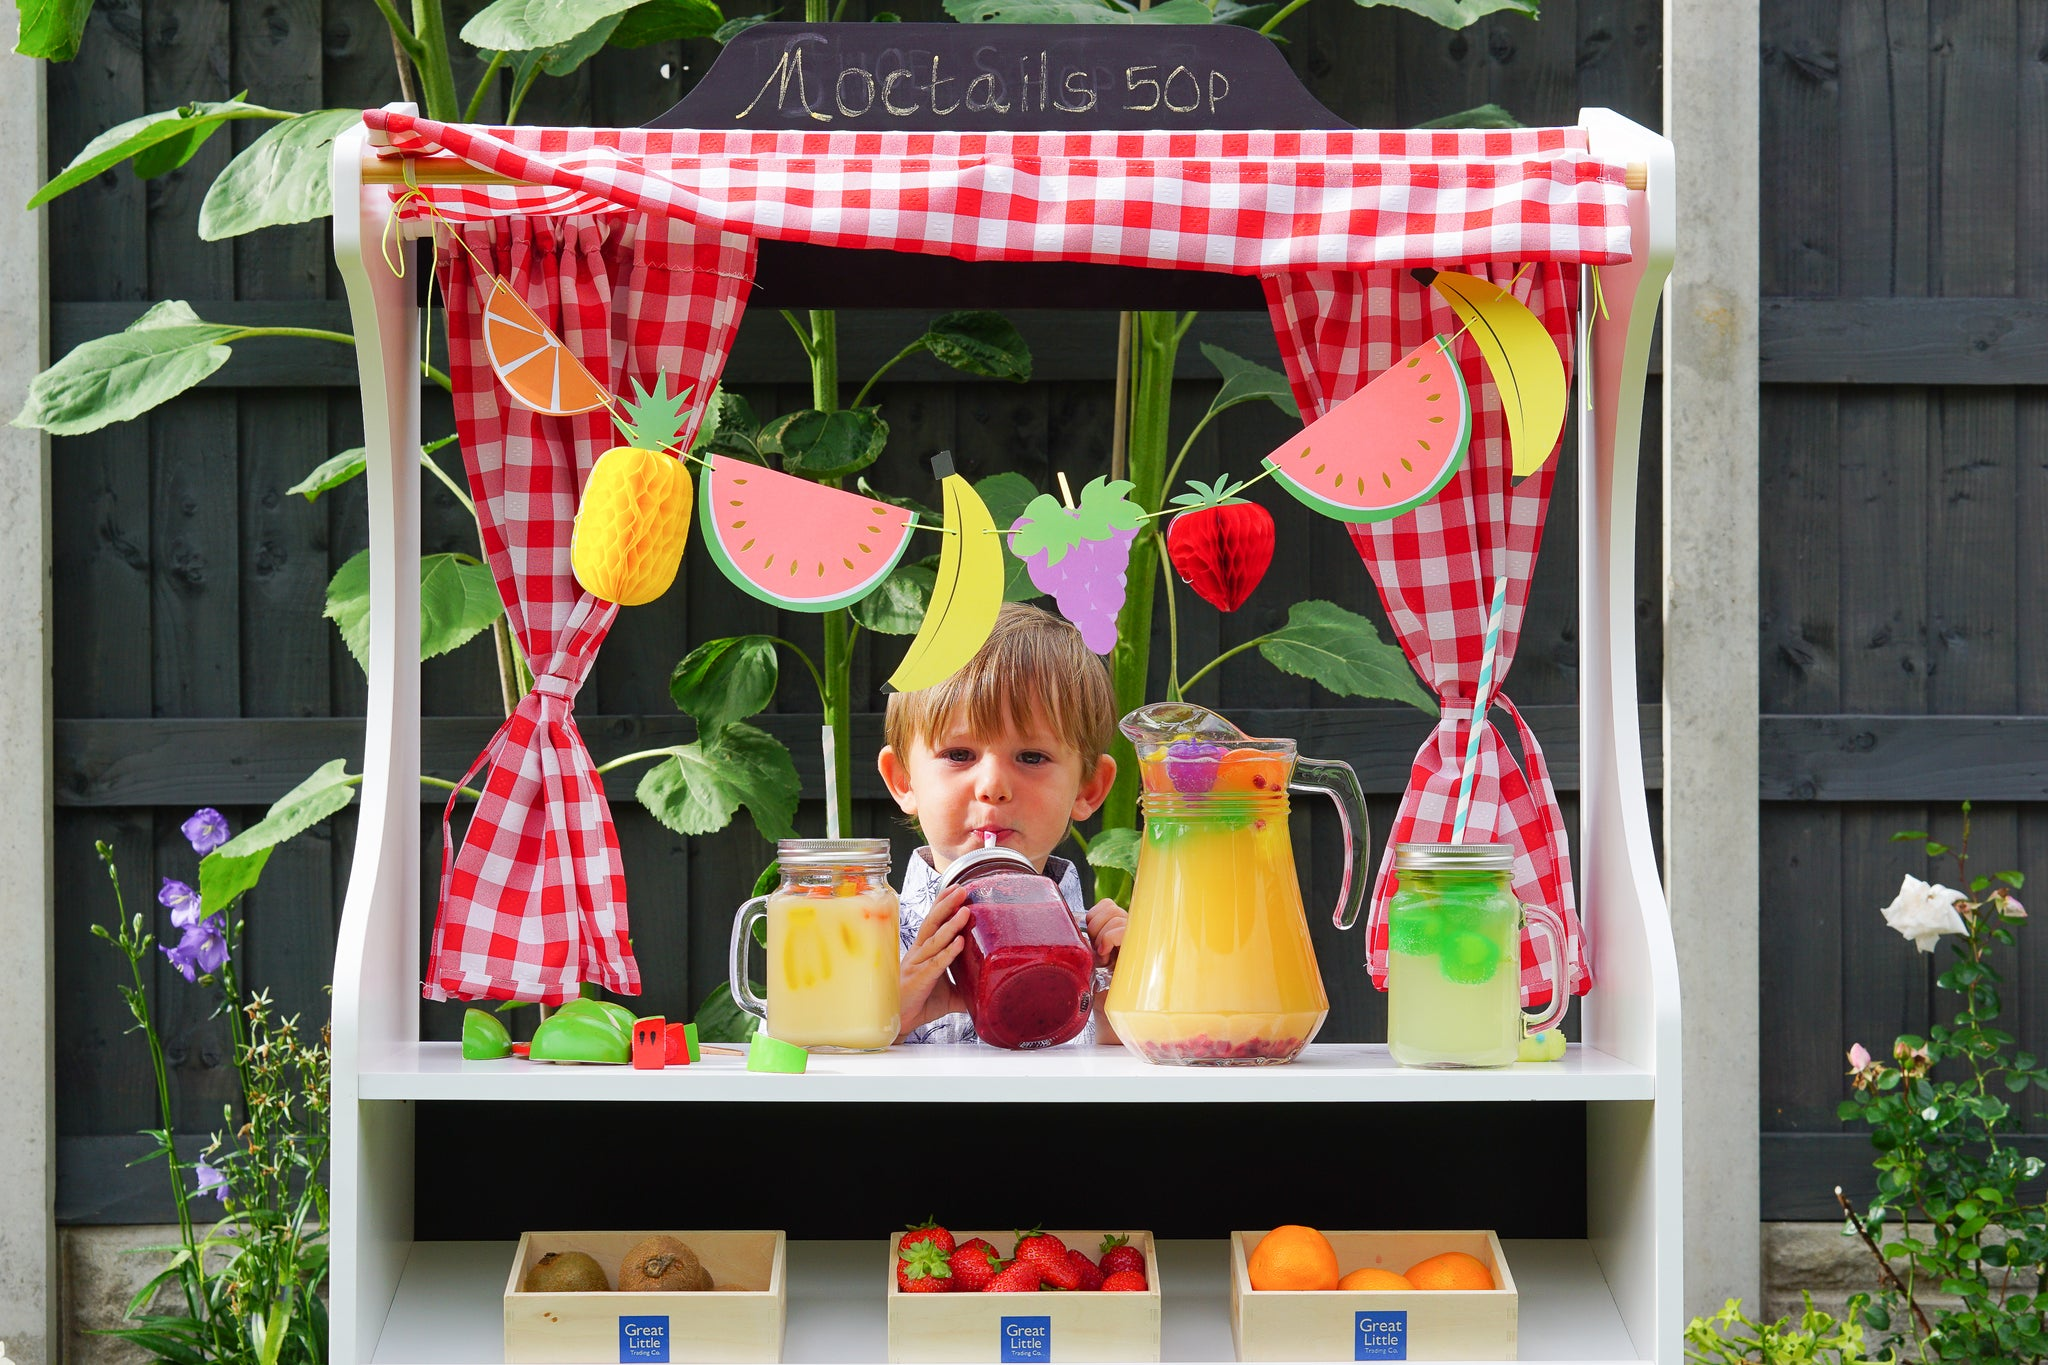 SET UP A FRESH FRUIT AND MOCKTAILS SHOP THIS SUMMER